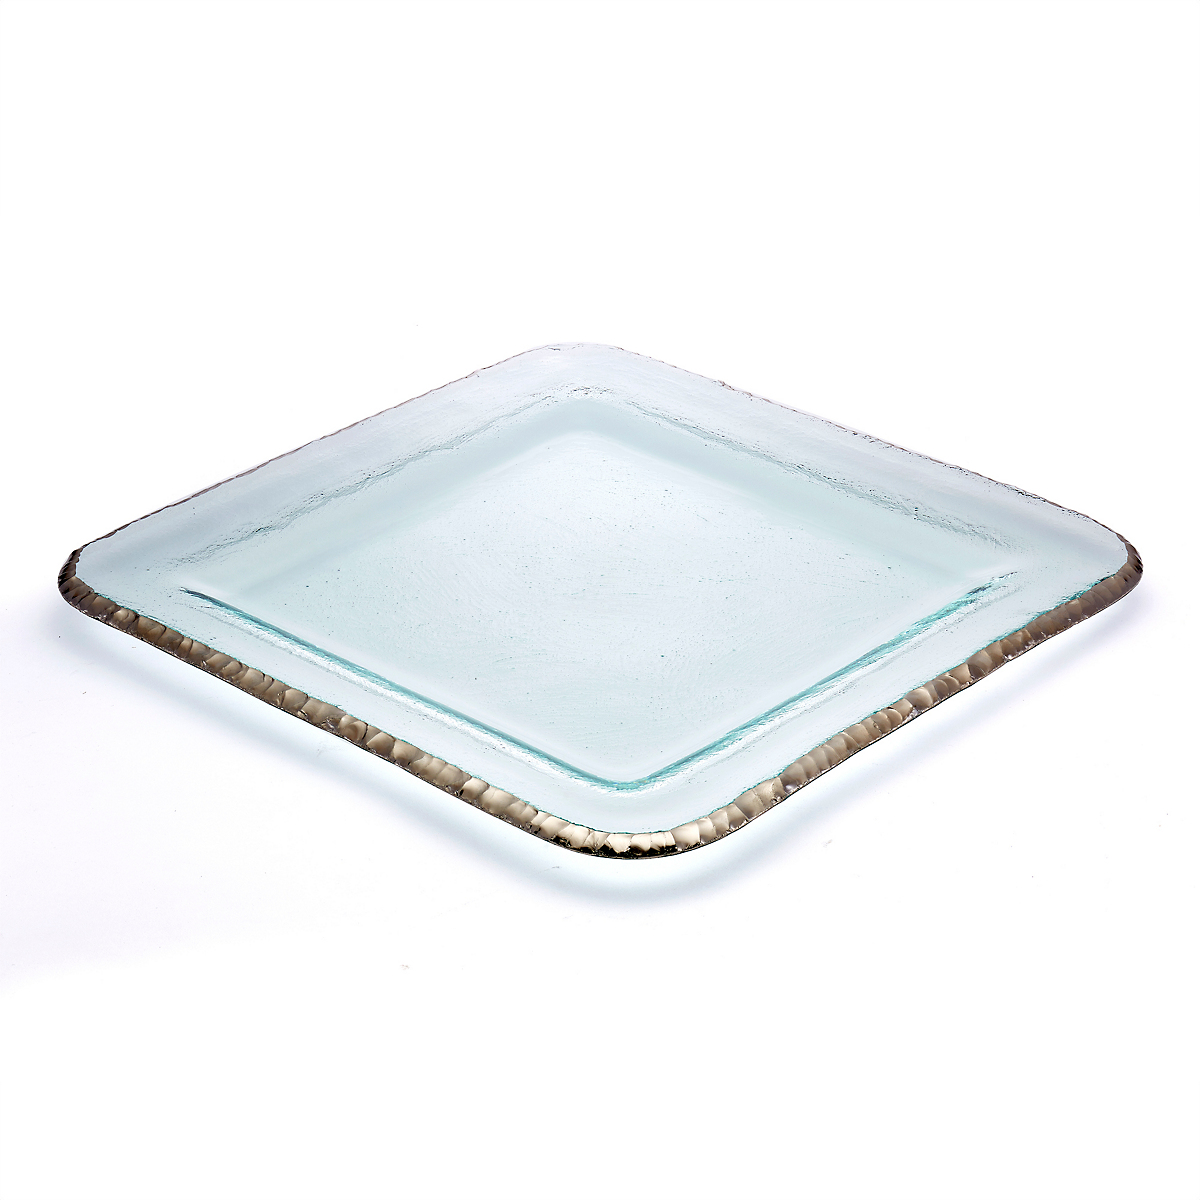 Annieglass Edgey Square Platter, Large Platinum